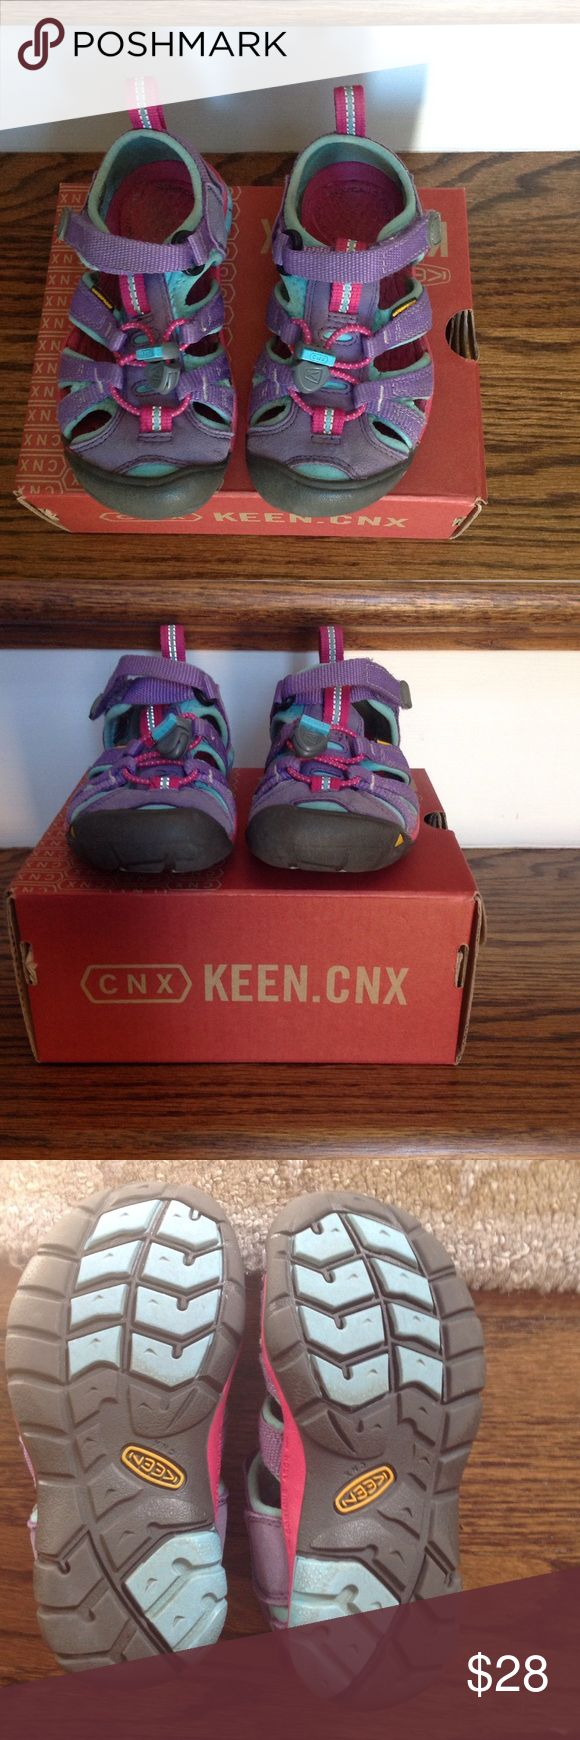 Toddler Keens  Toddler SEACAMP II CNX. Purple Heart/Very berry Keens. These are perfect for the spring and summer! I love that my kids can put these on without help. Great when you are in a hurry too. This is a high protection water sandal with a grippy rubber sole. Easy to clean. Washable. Great condition. Keen Shoes Sandals & Flip Flops